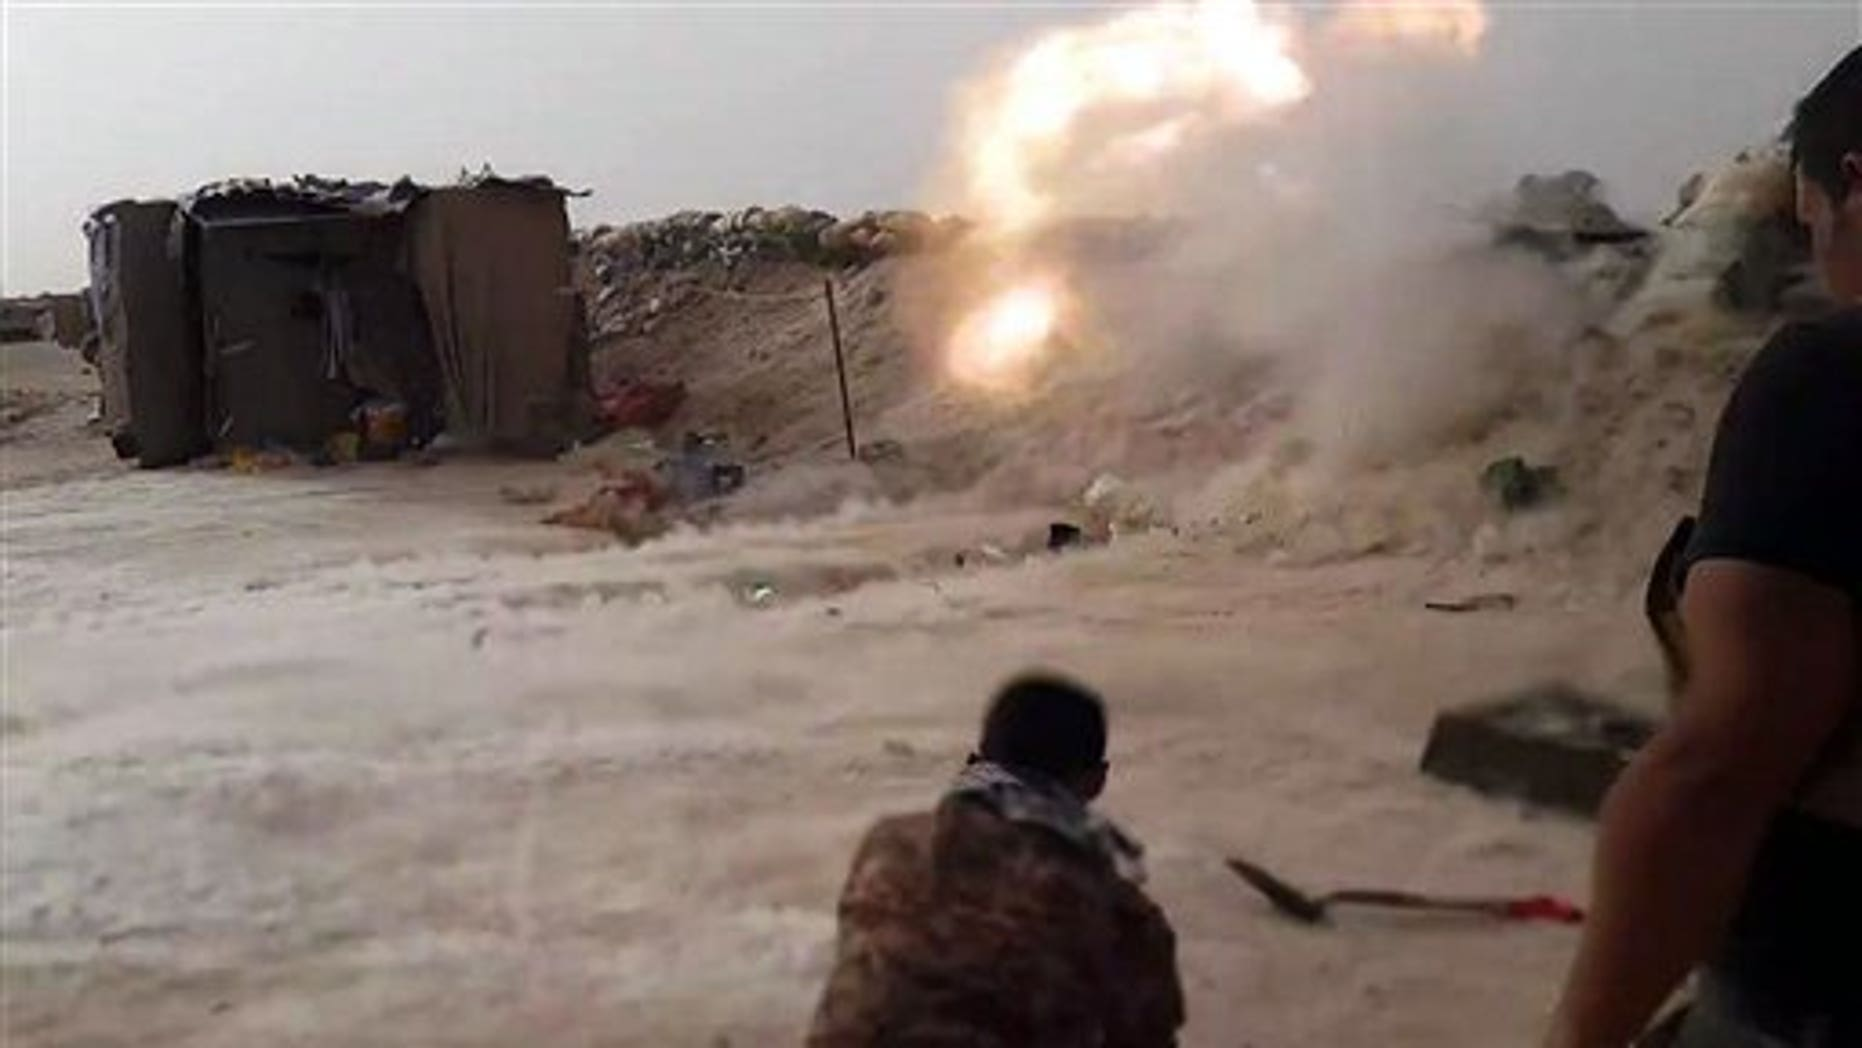 In this image taken Friday, May 29, 2015, Iraqi anti-terrorism forces battle with Islamic State group extremists as they defend their base against attack outside Fallujah, 40 miles (65 kilometers) west of Baghdad, Iraq. (AP Photo)